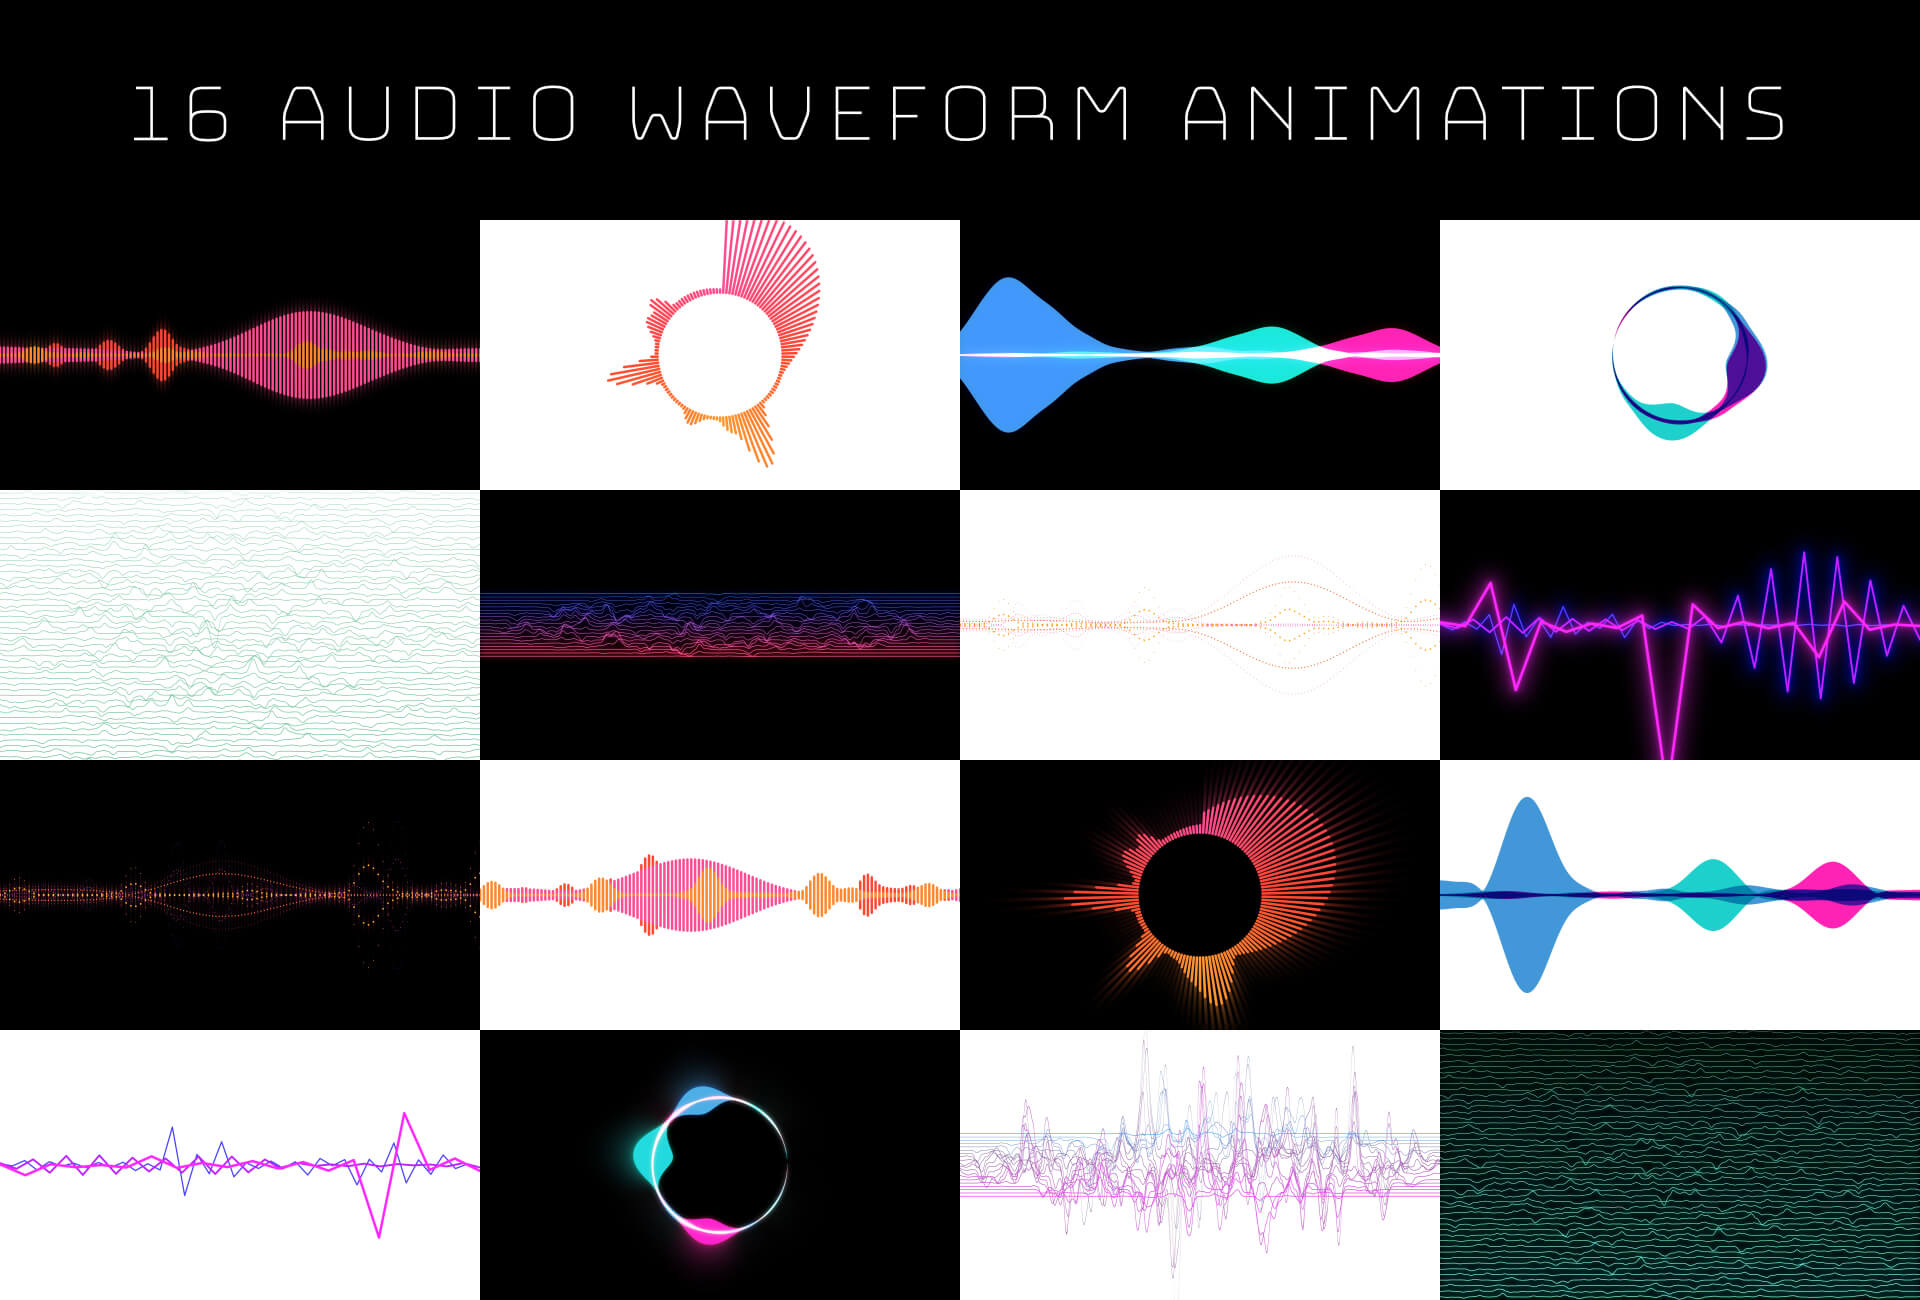 Speech Waveform Animation Stock Footage Pack 1